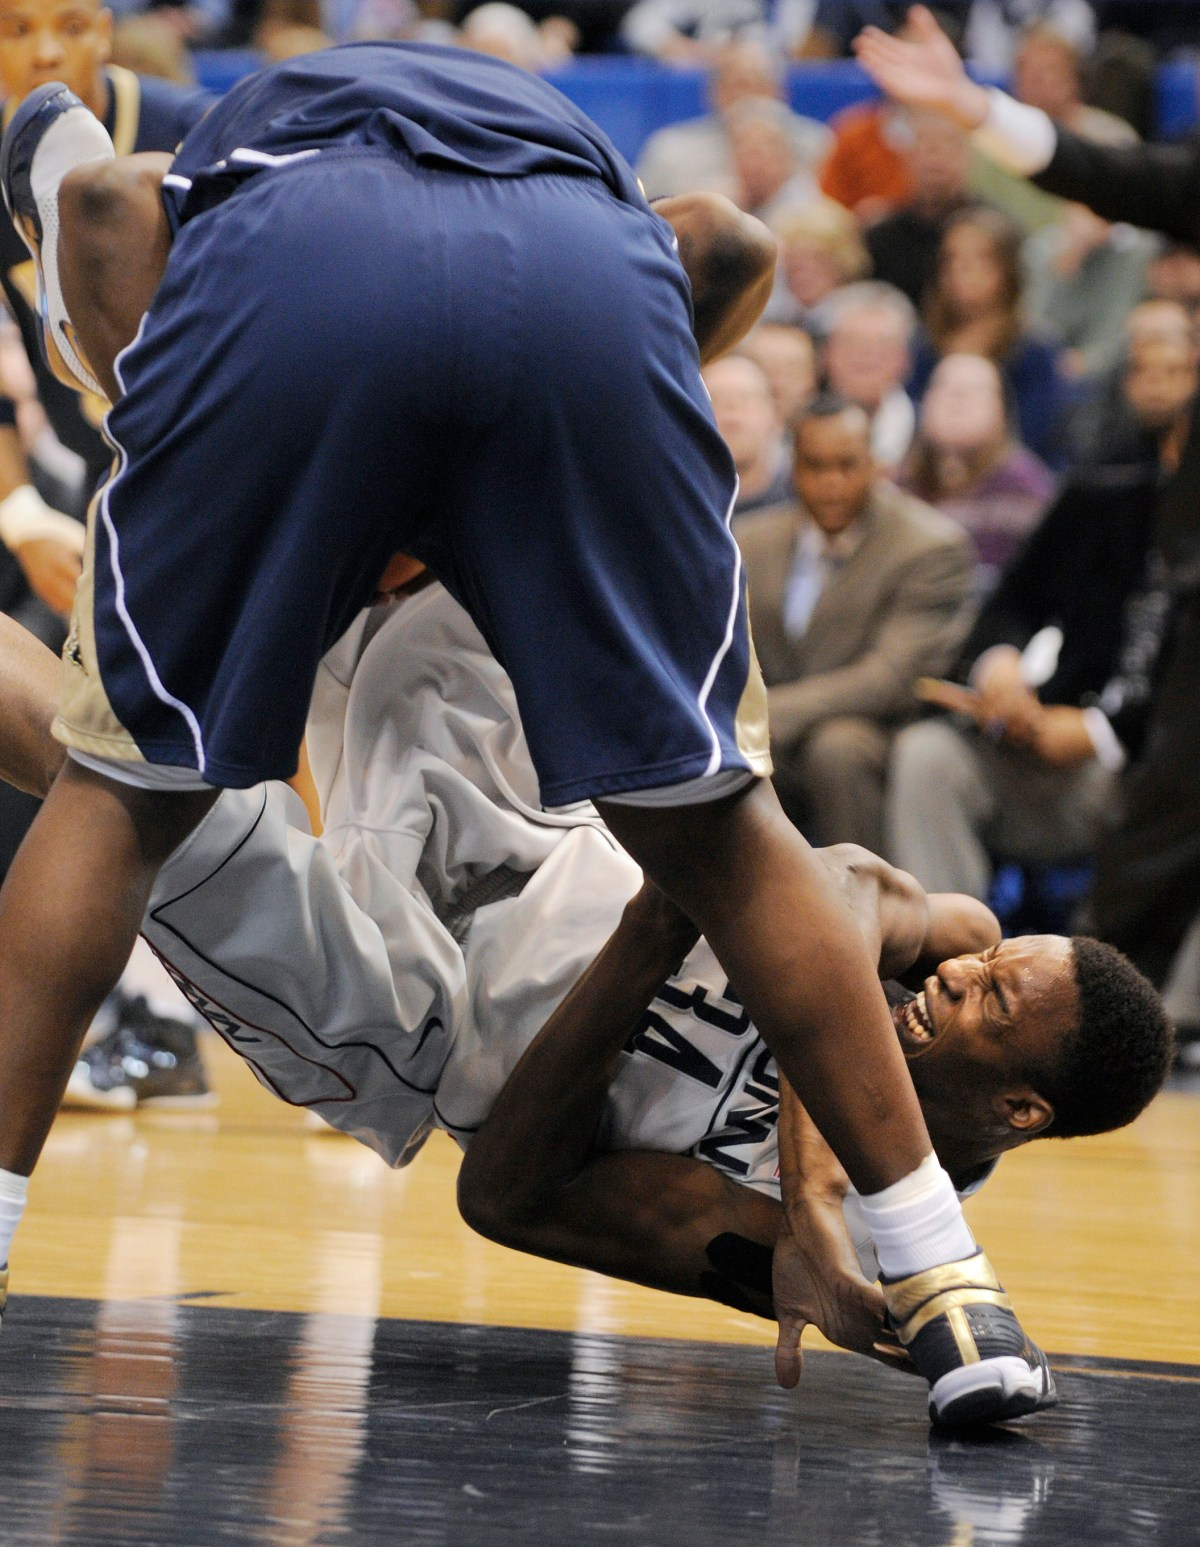 Connecticut's Hasheem Thabeet lands hard after attempting a rebound against Pittsburgh's DeJuan Blair during the first half of an NCAA college basketball game in Hartford, Conn., on Monday, Feb. 16, 2009.  (AP Photo/Fred Beckham)